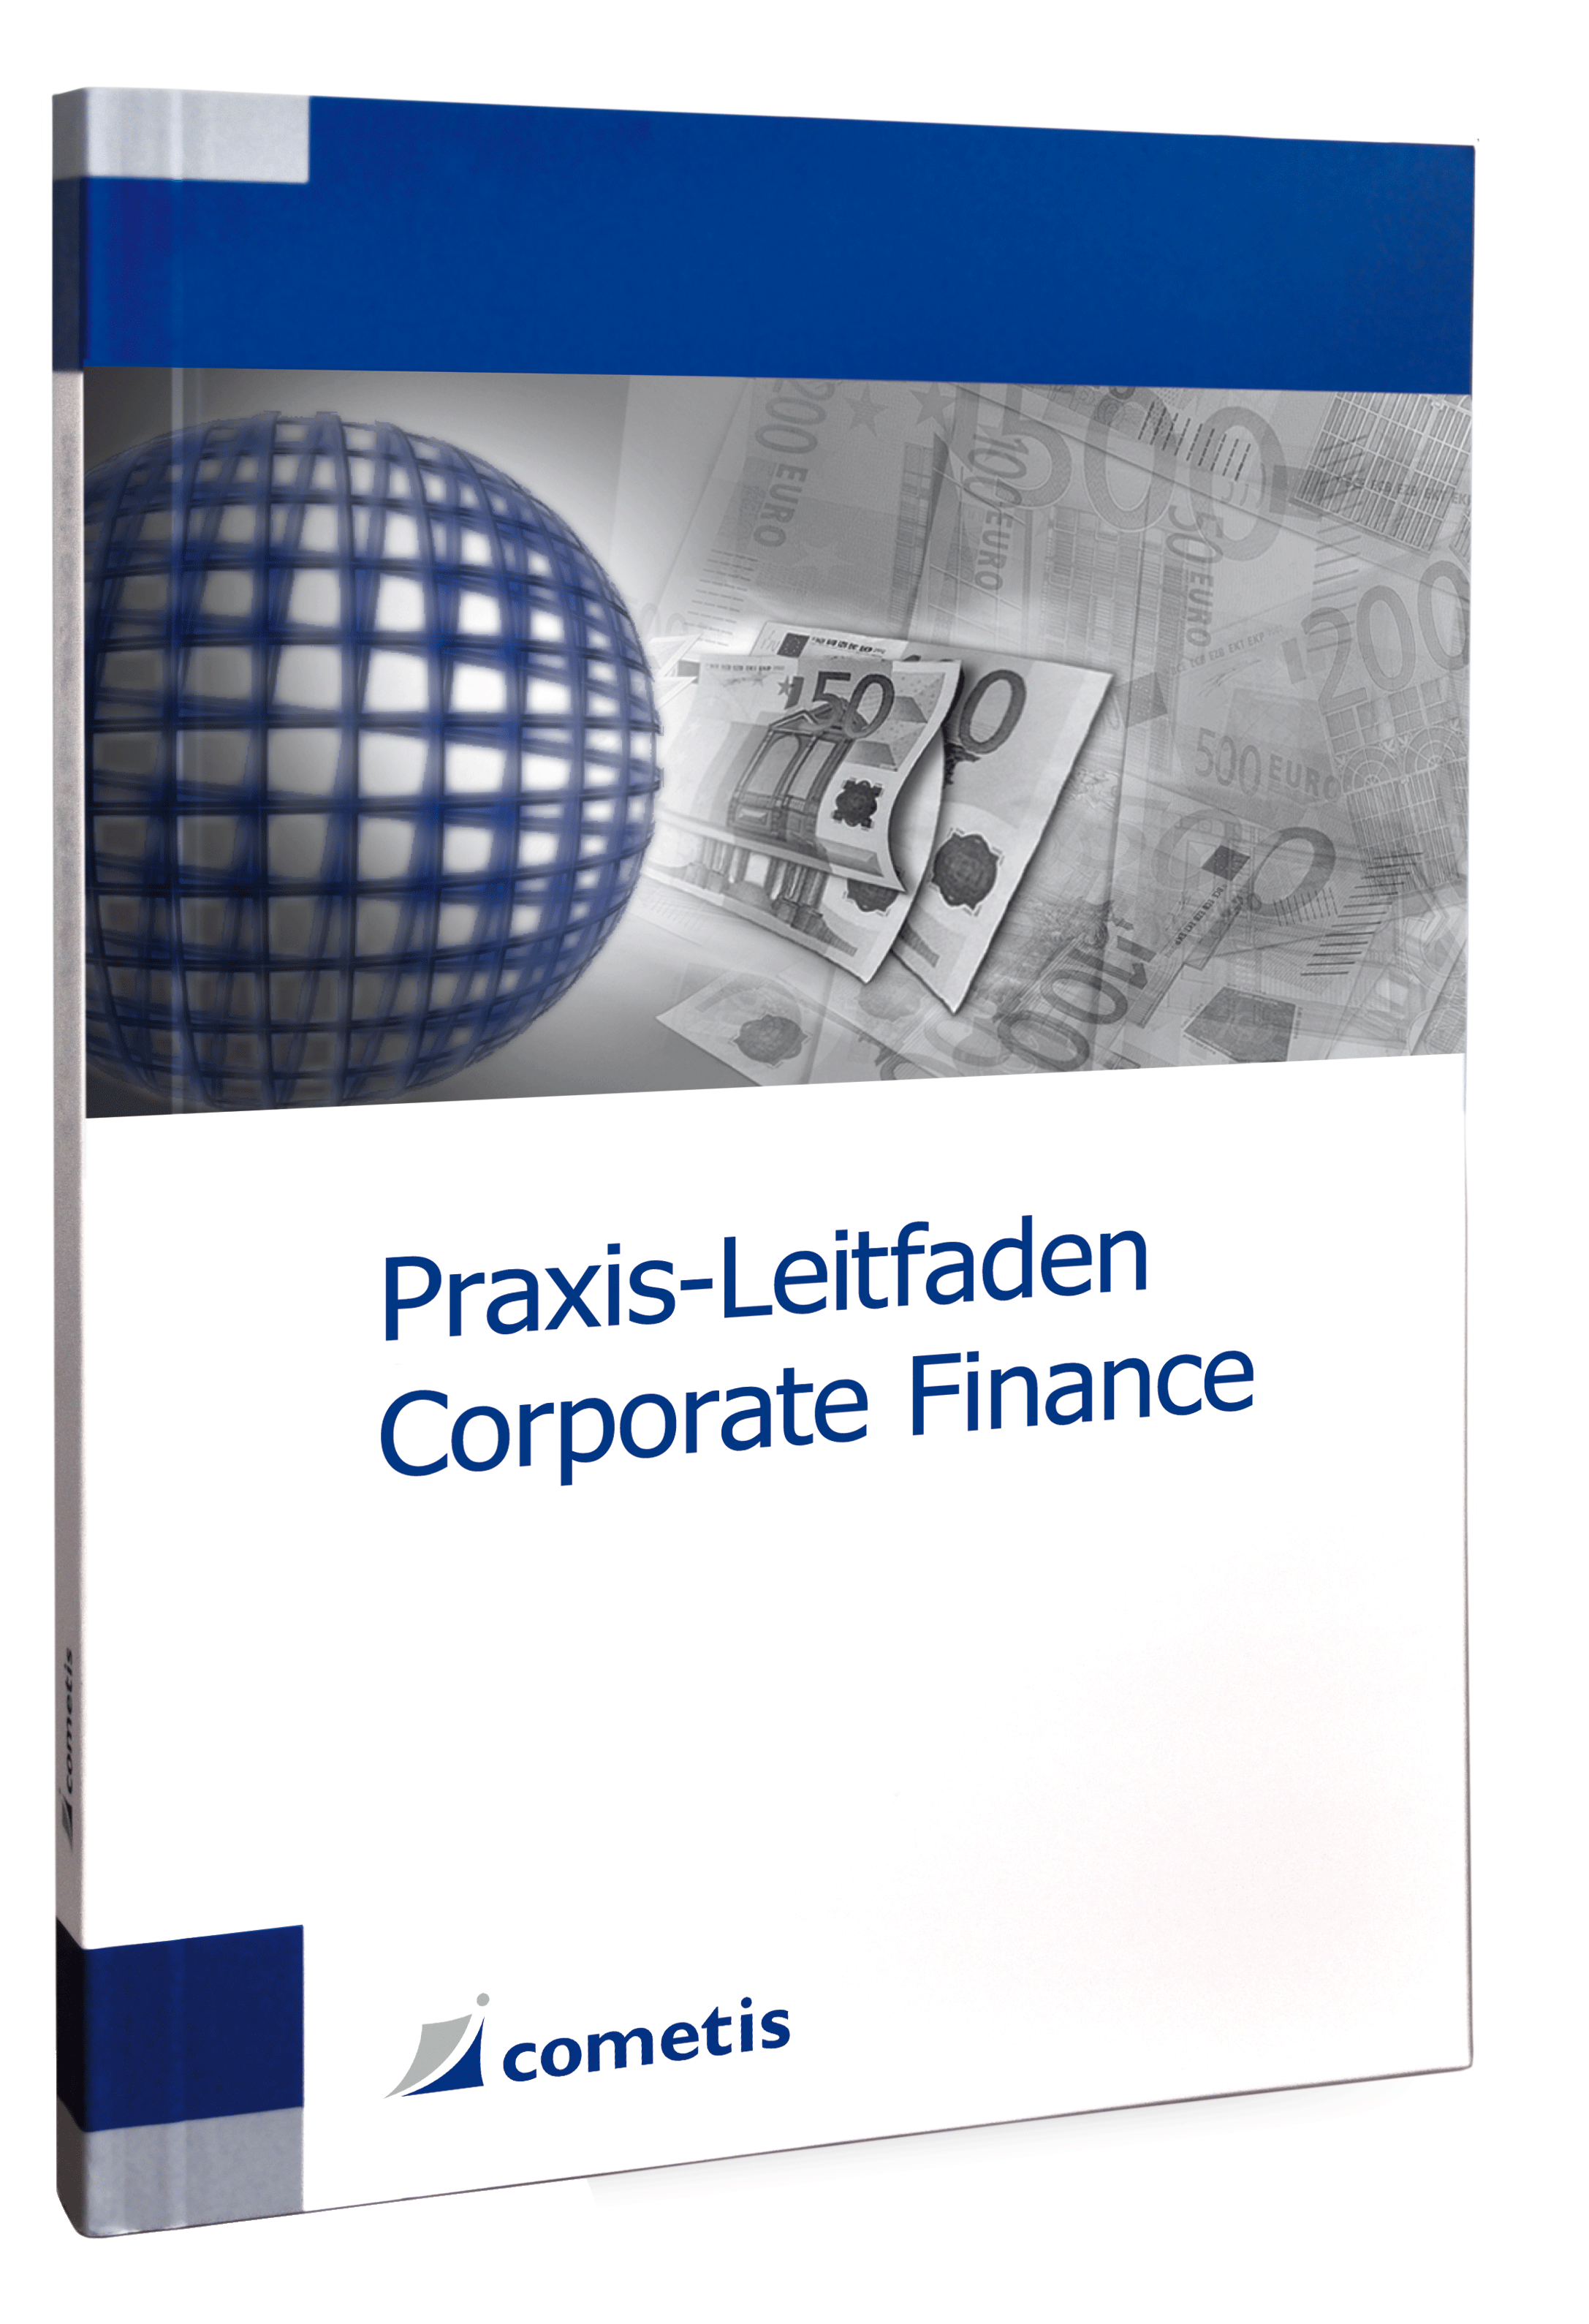 Praxis-Leitfaden Corporate Finance